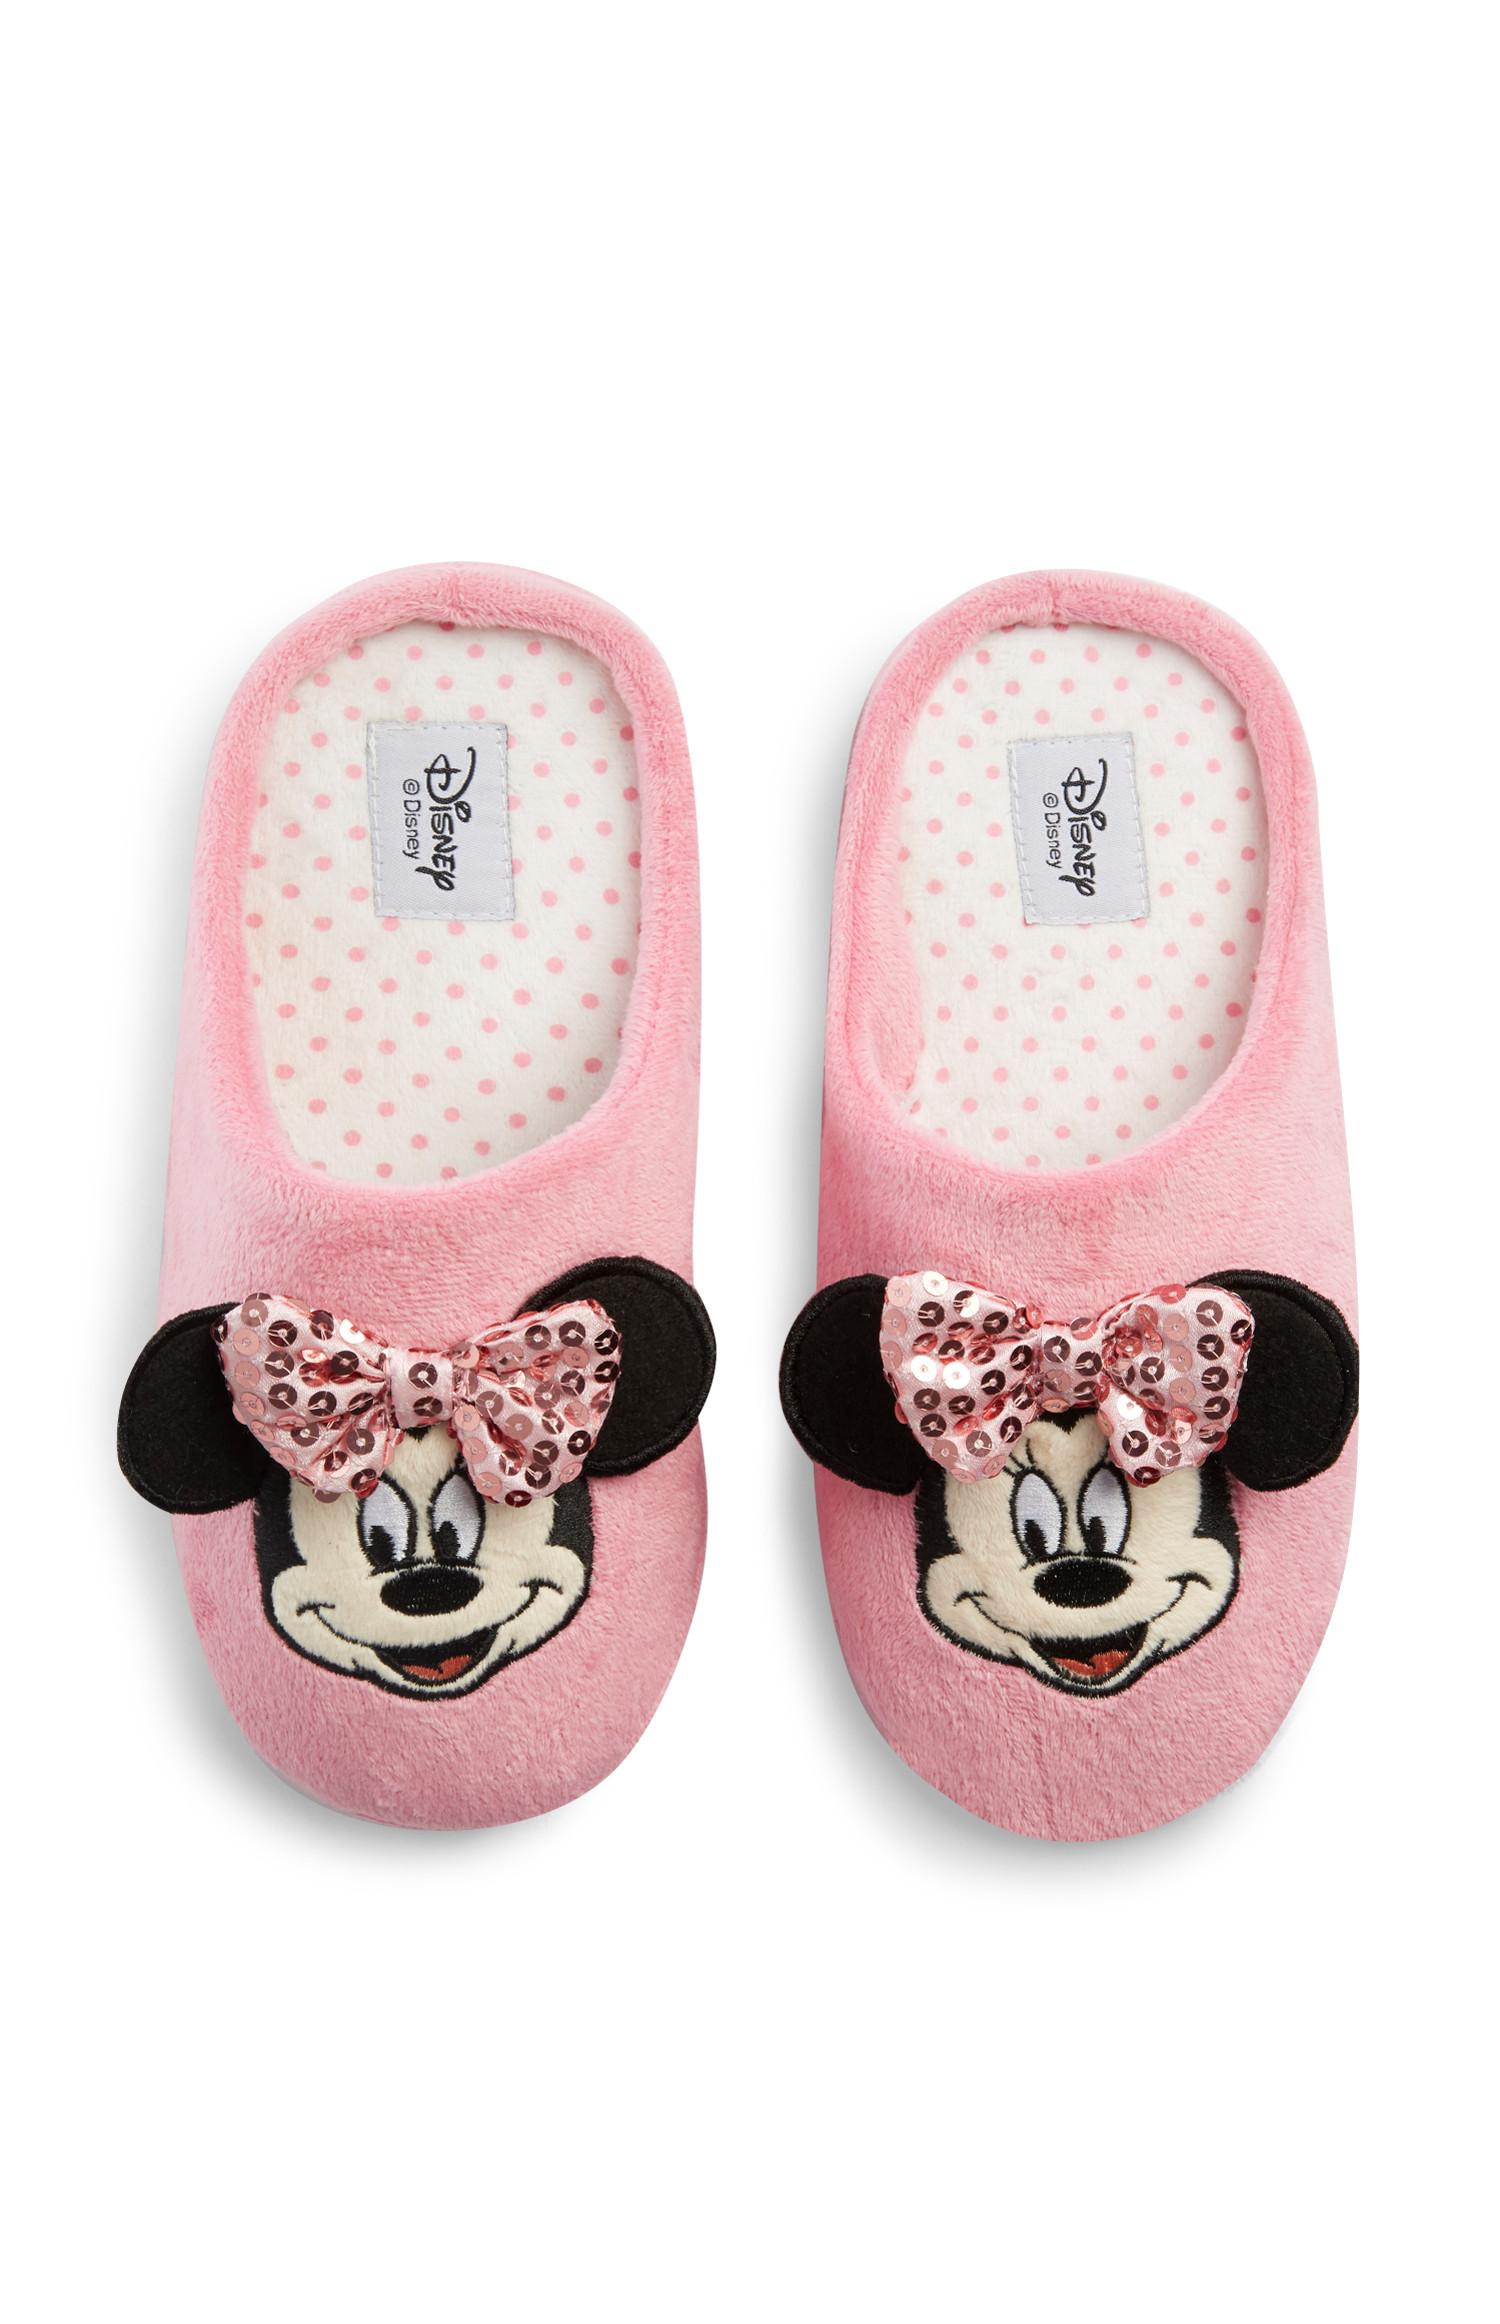 Pantuflas de Minnie Mouse